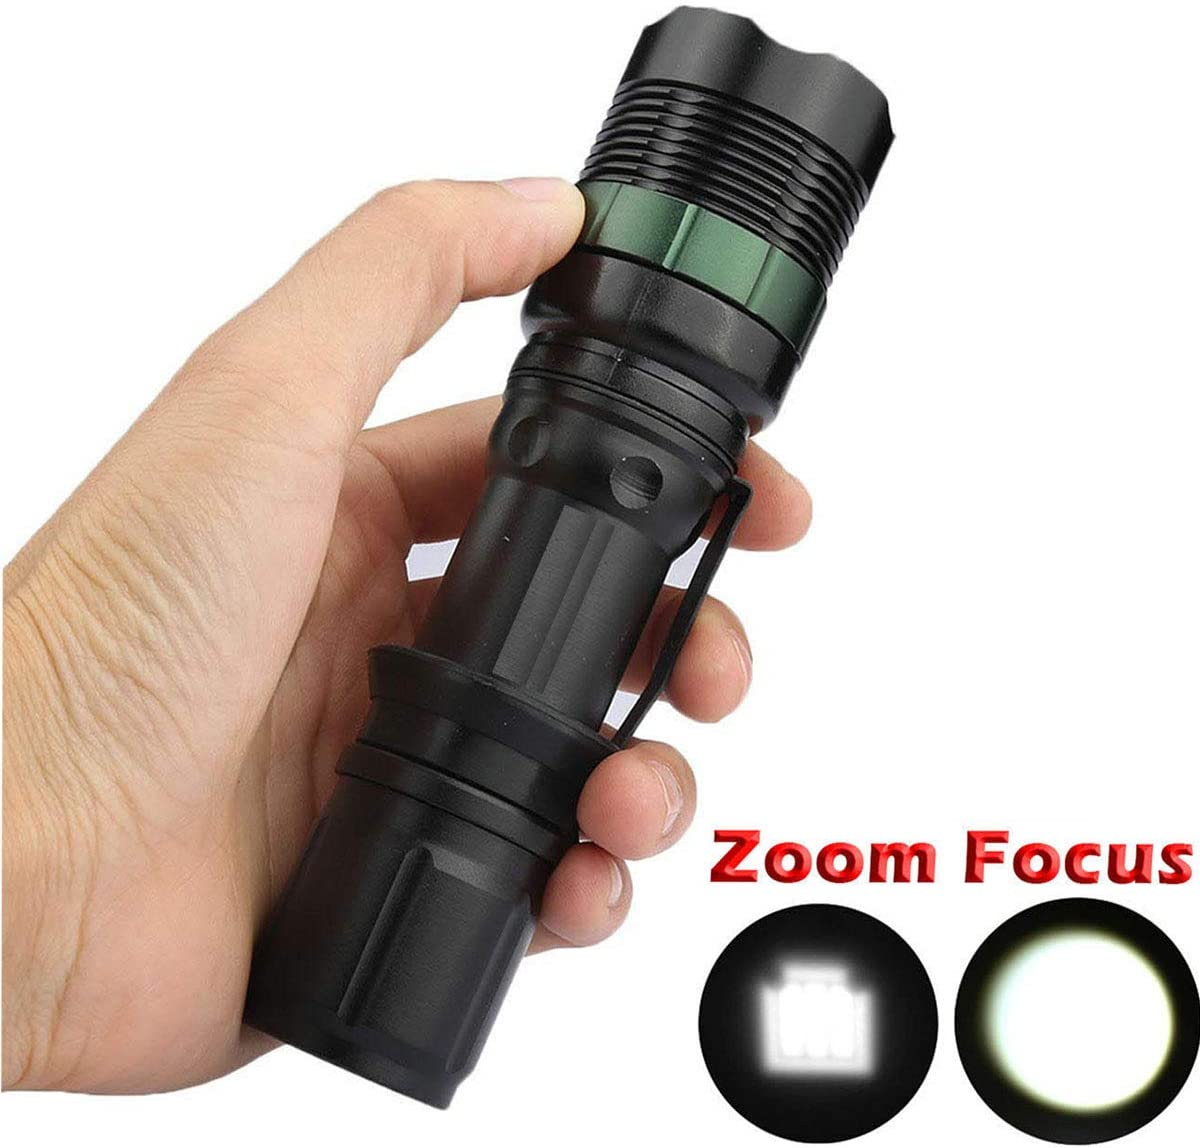 2 Set 5000Lumen T6 LED Tactical Zoomable Flashlights 5800mAh 18650 Rechargeable Li-ion Battery With Charger